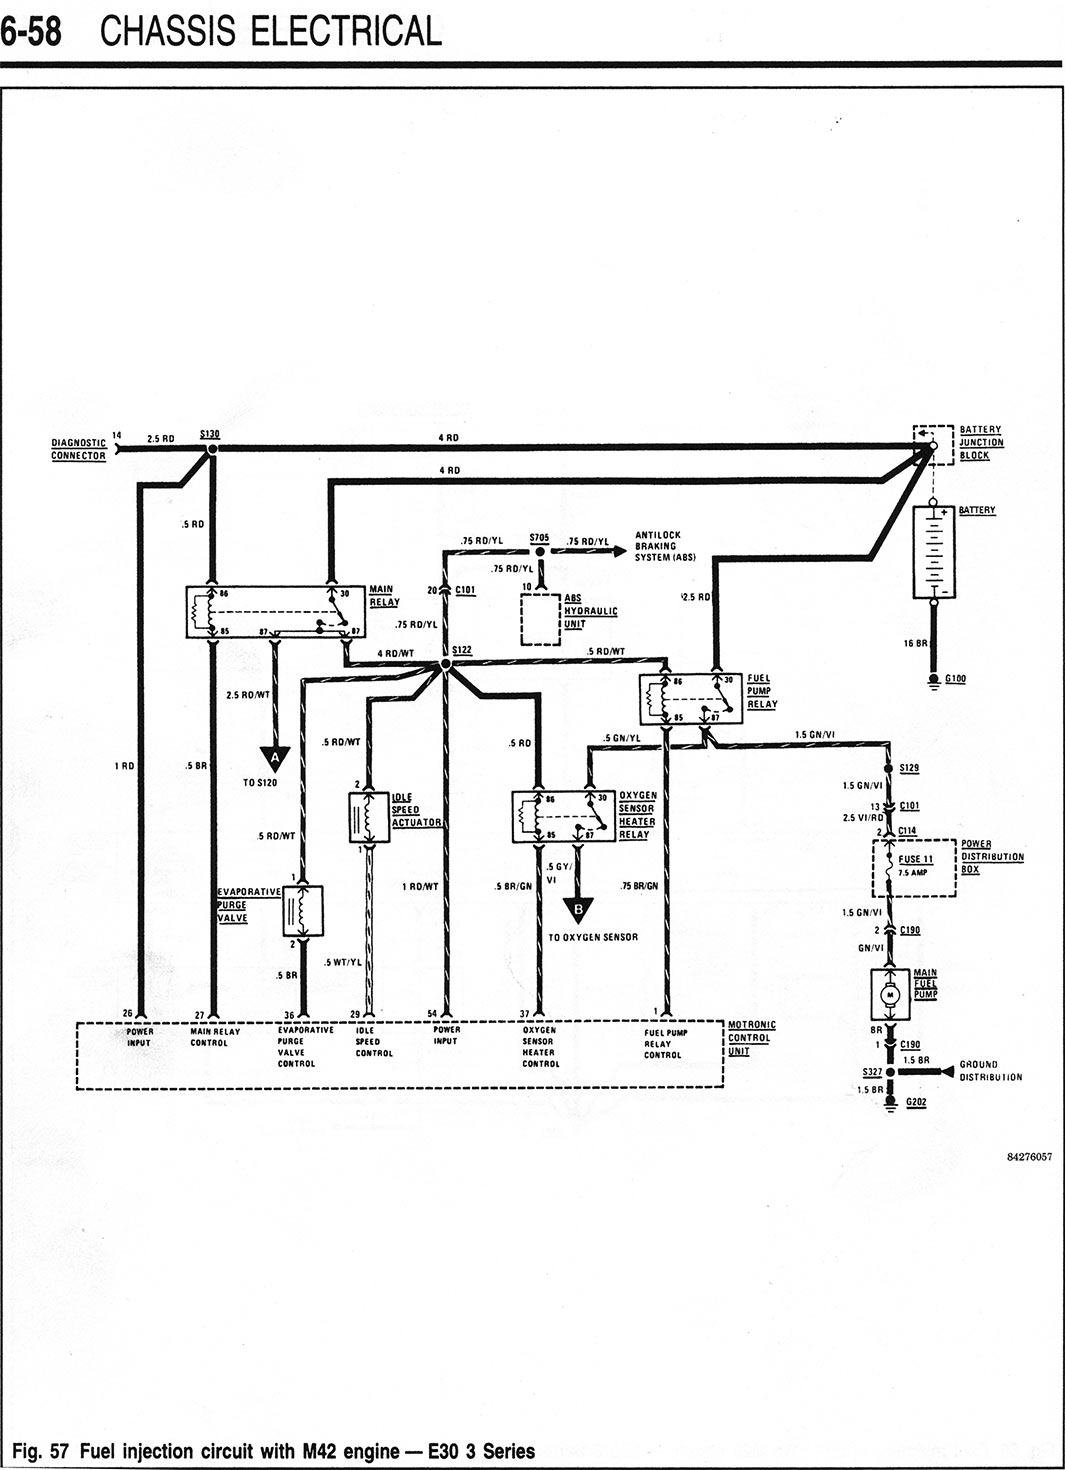 PG658 e30 wiring diagram e30 amplifier wiring diagram \u2022 wiring diagrams BMW E46 M3 Black at reclaimingppi.co